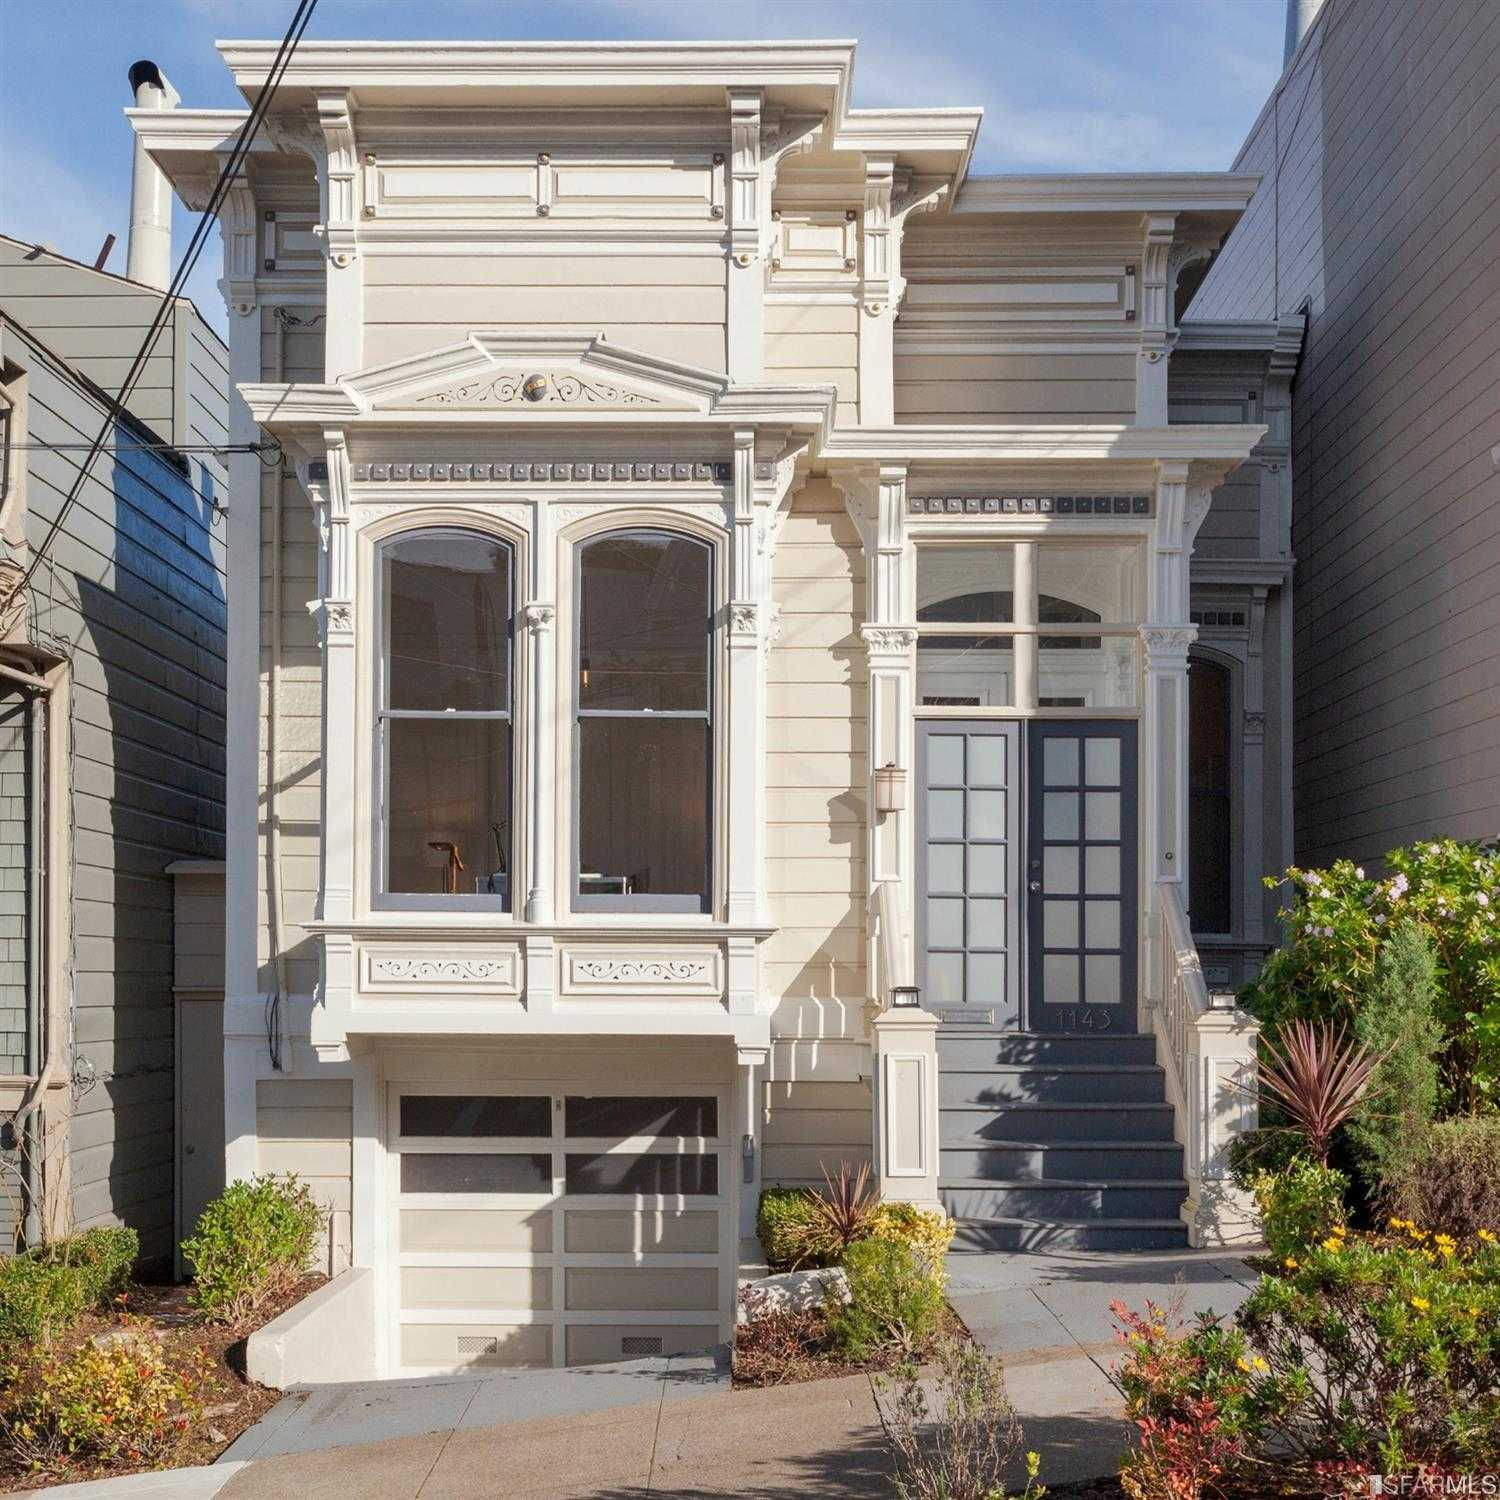 1143 Diamond St San Francisco, CA 94114